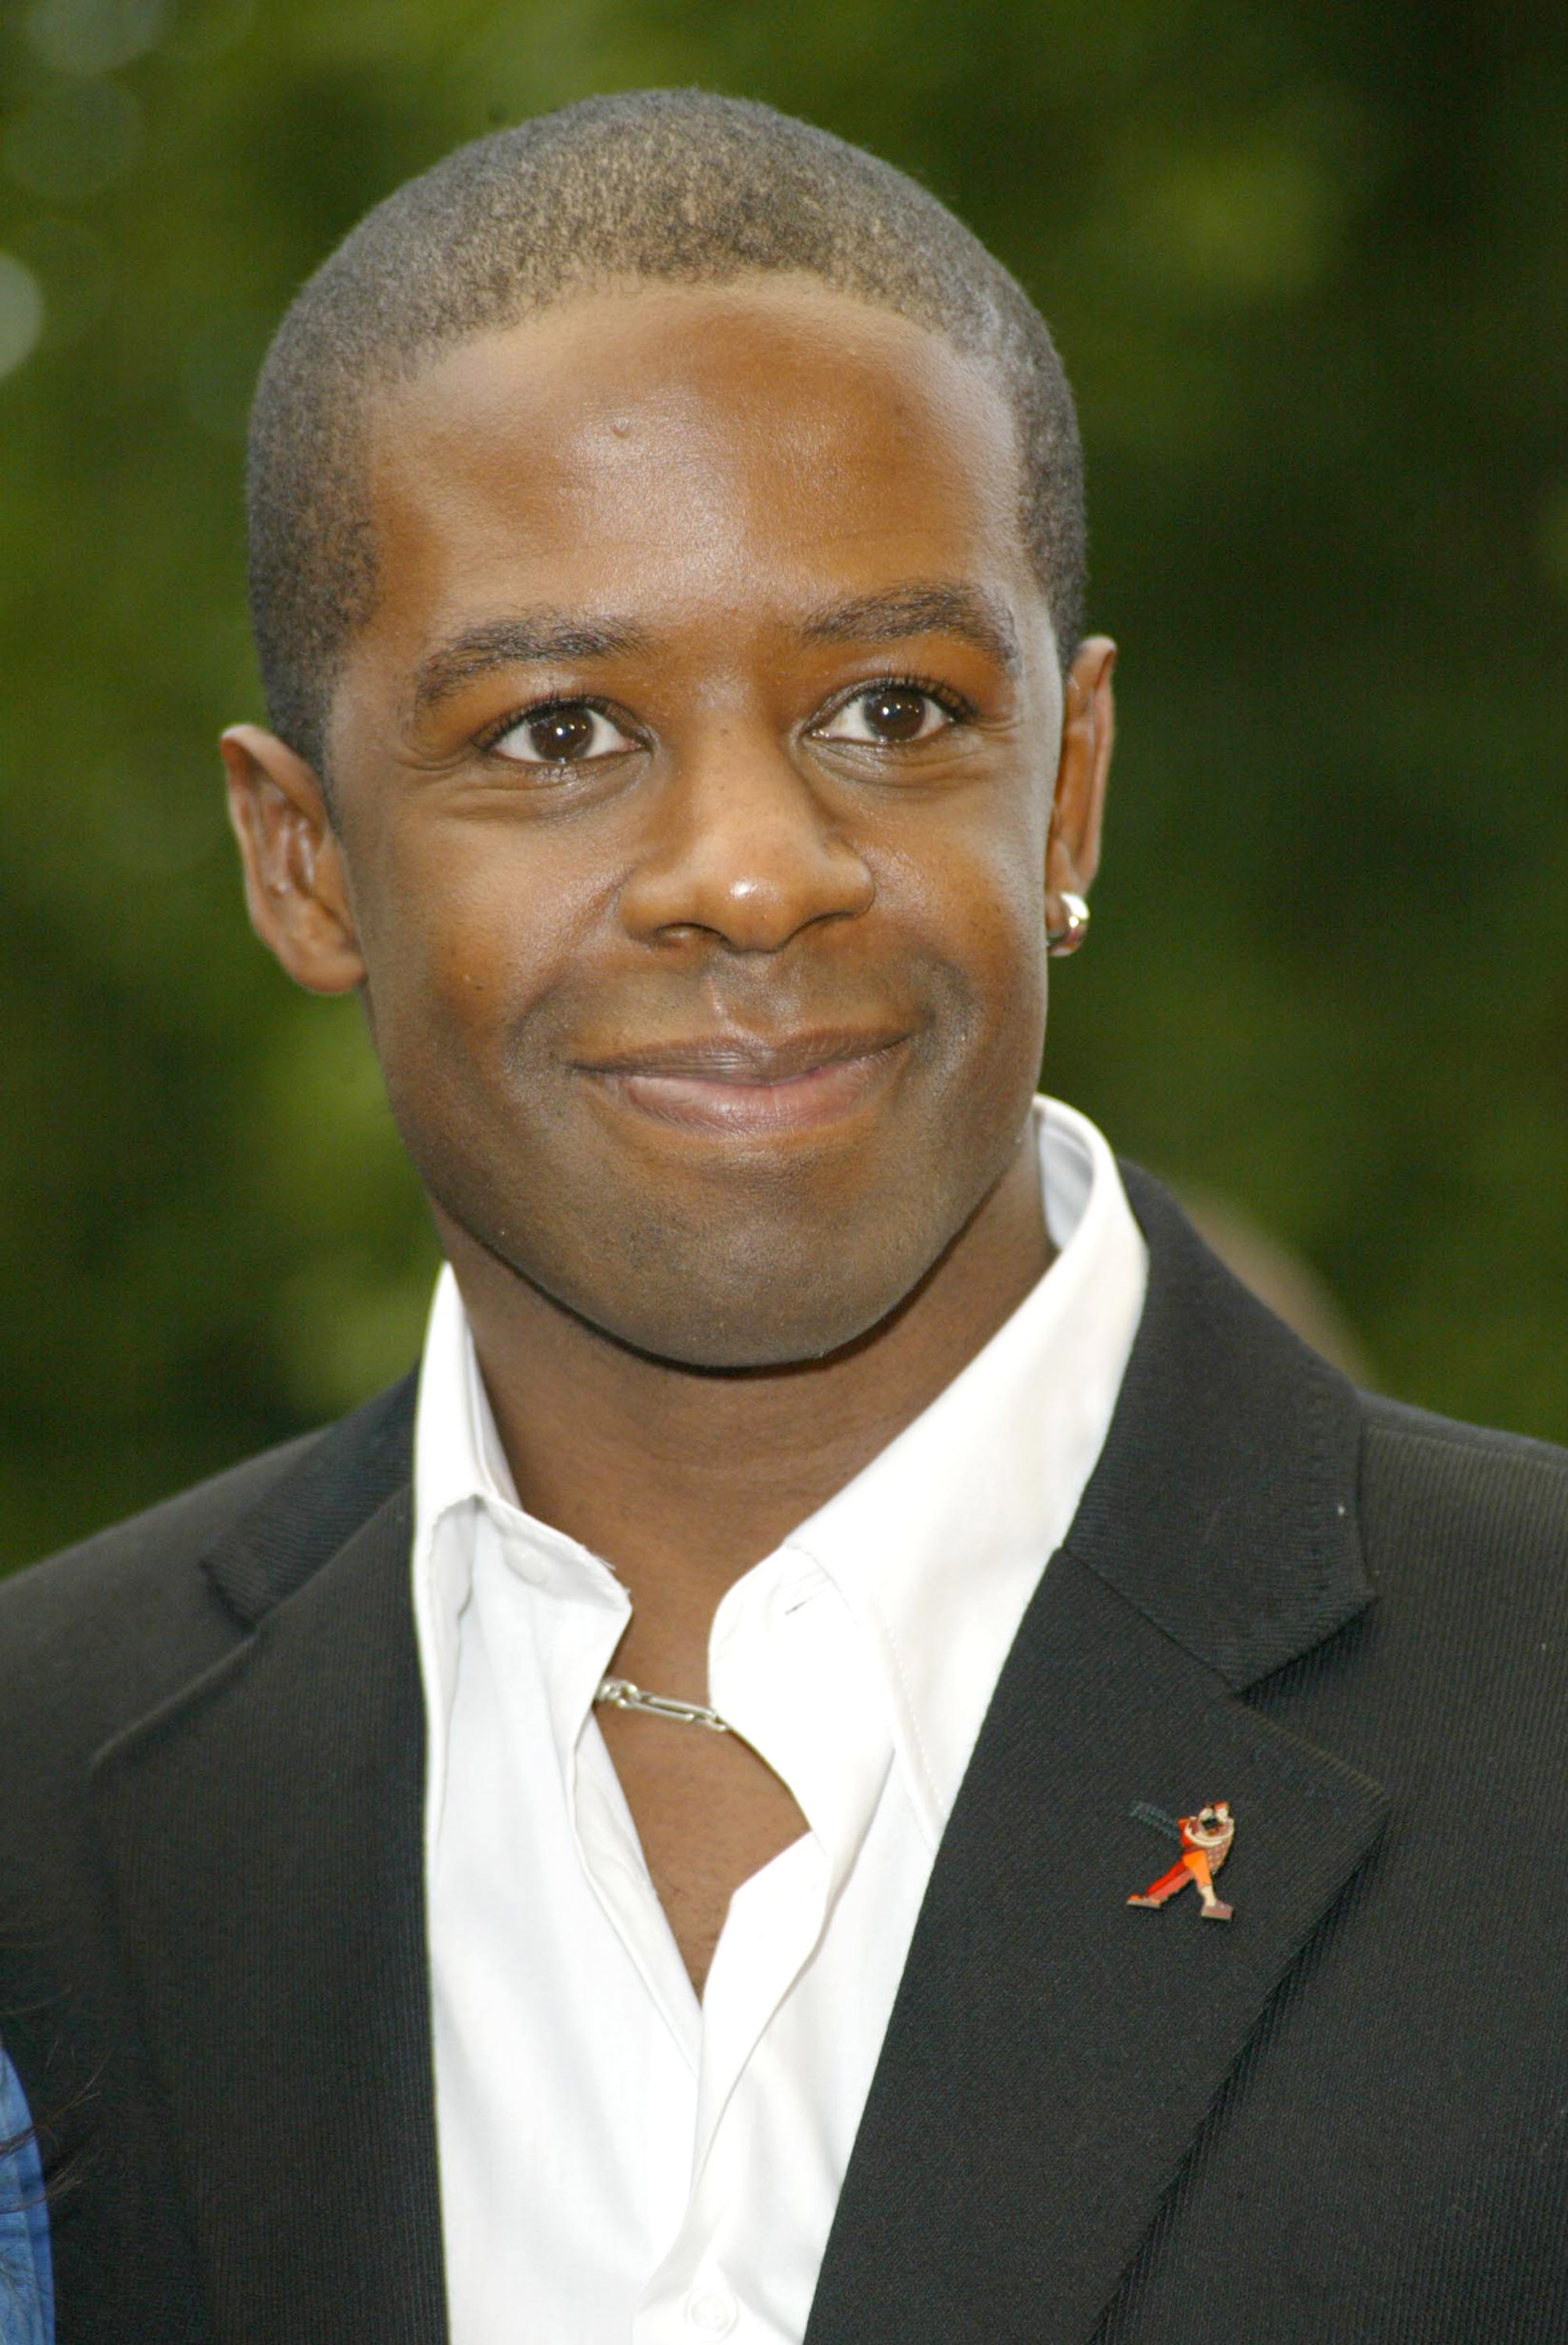 adrian lester othelloadrian lester actor, adrian lester othello, adrian lester 2015, adrian lester imdb, adrian lester height, adrian lester wife, adrian lester hustle, adrian lester net worth, adrian lester bond, adrian lester vs idris elba, adrian lester hamlet, adrian lester idris elba, adrian lester picture, adrian lester interview, adrian lester pic, adrian lester doctor who, adrian lester twitter, adrian lester photos, adrian lester omaha, adrian lester and his wife